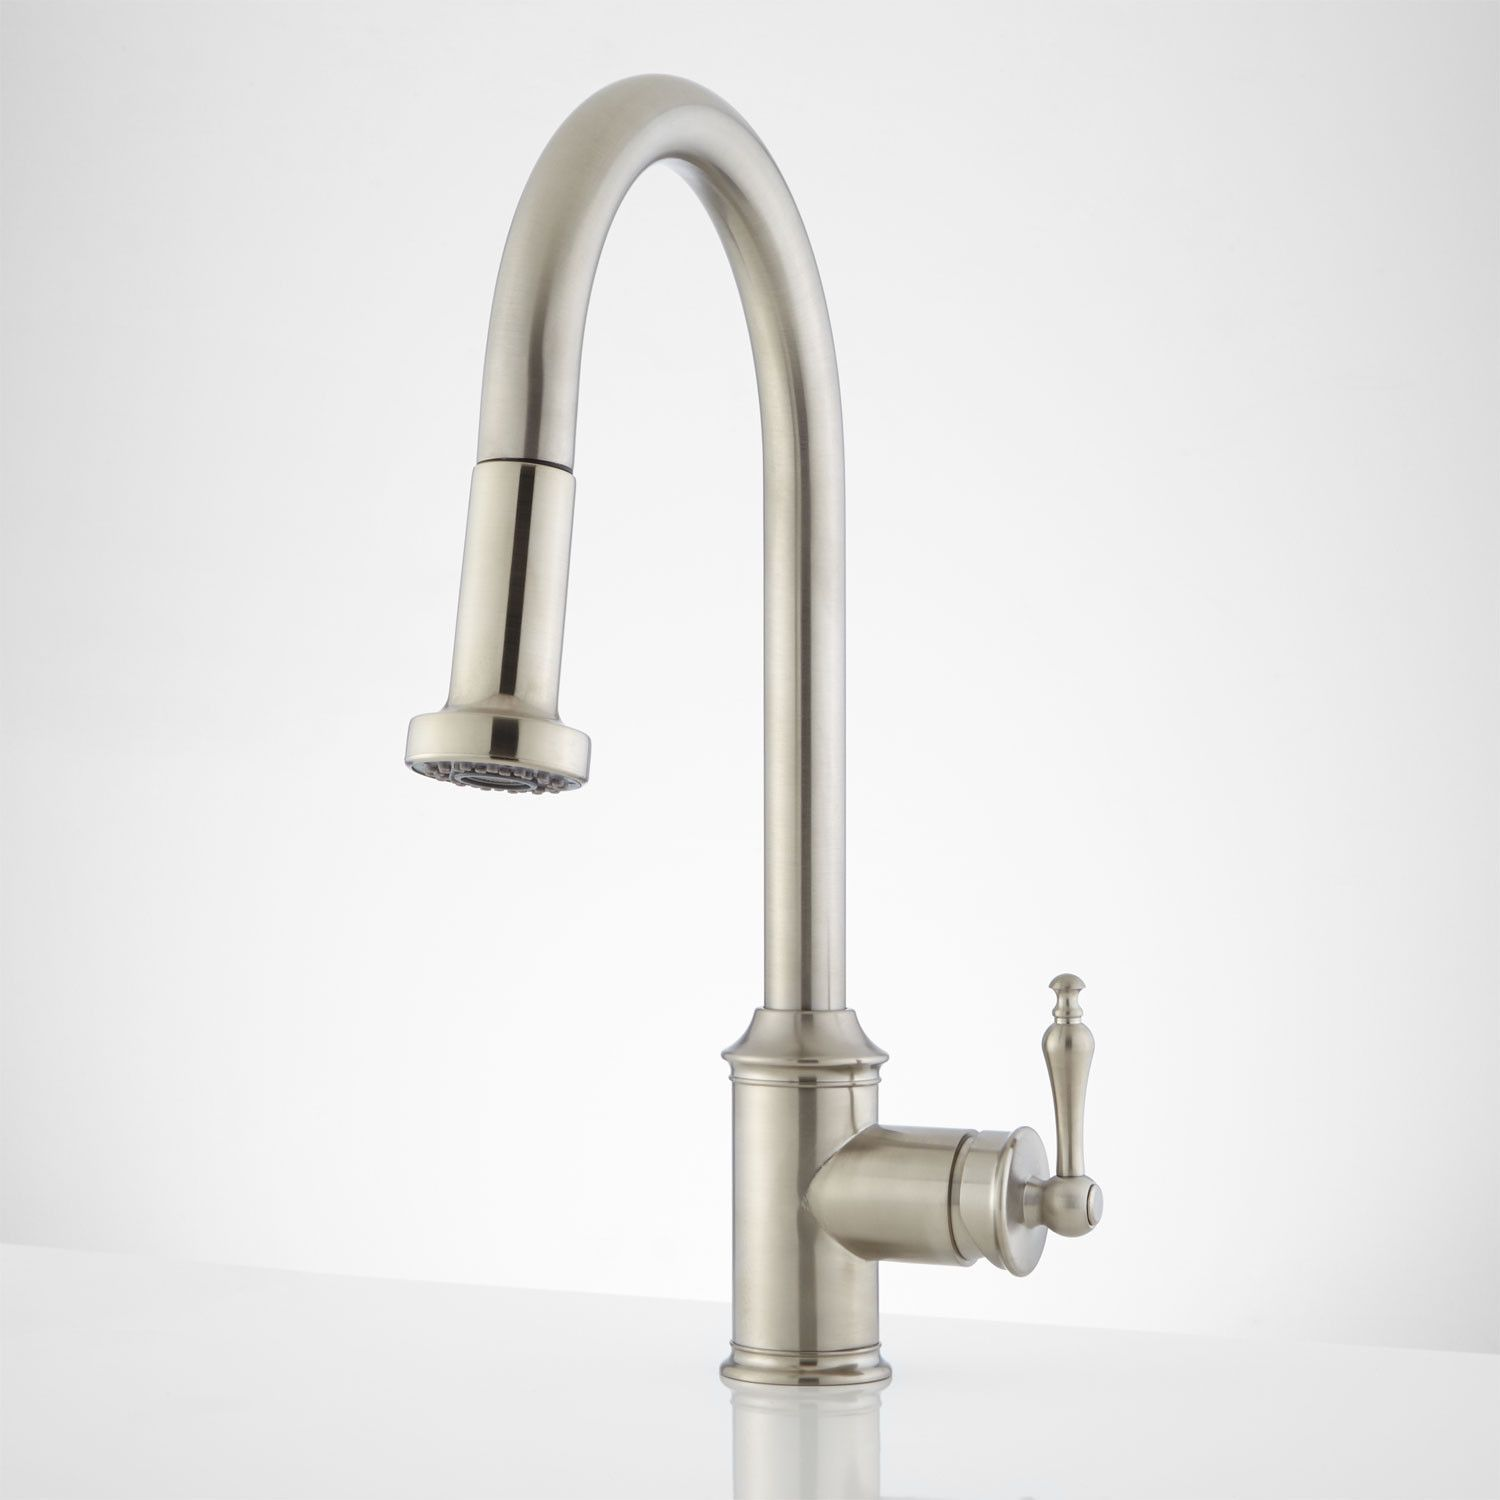 Best Kitchen Faucets, Southgate pull-down faucet